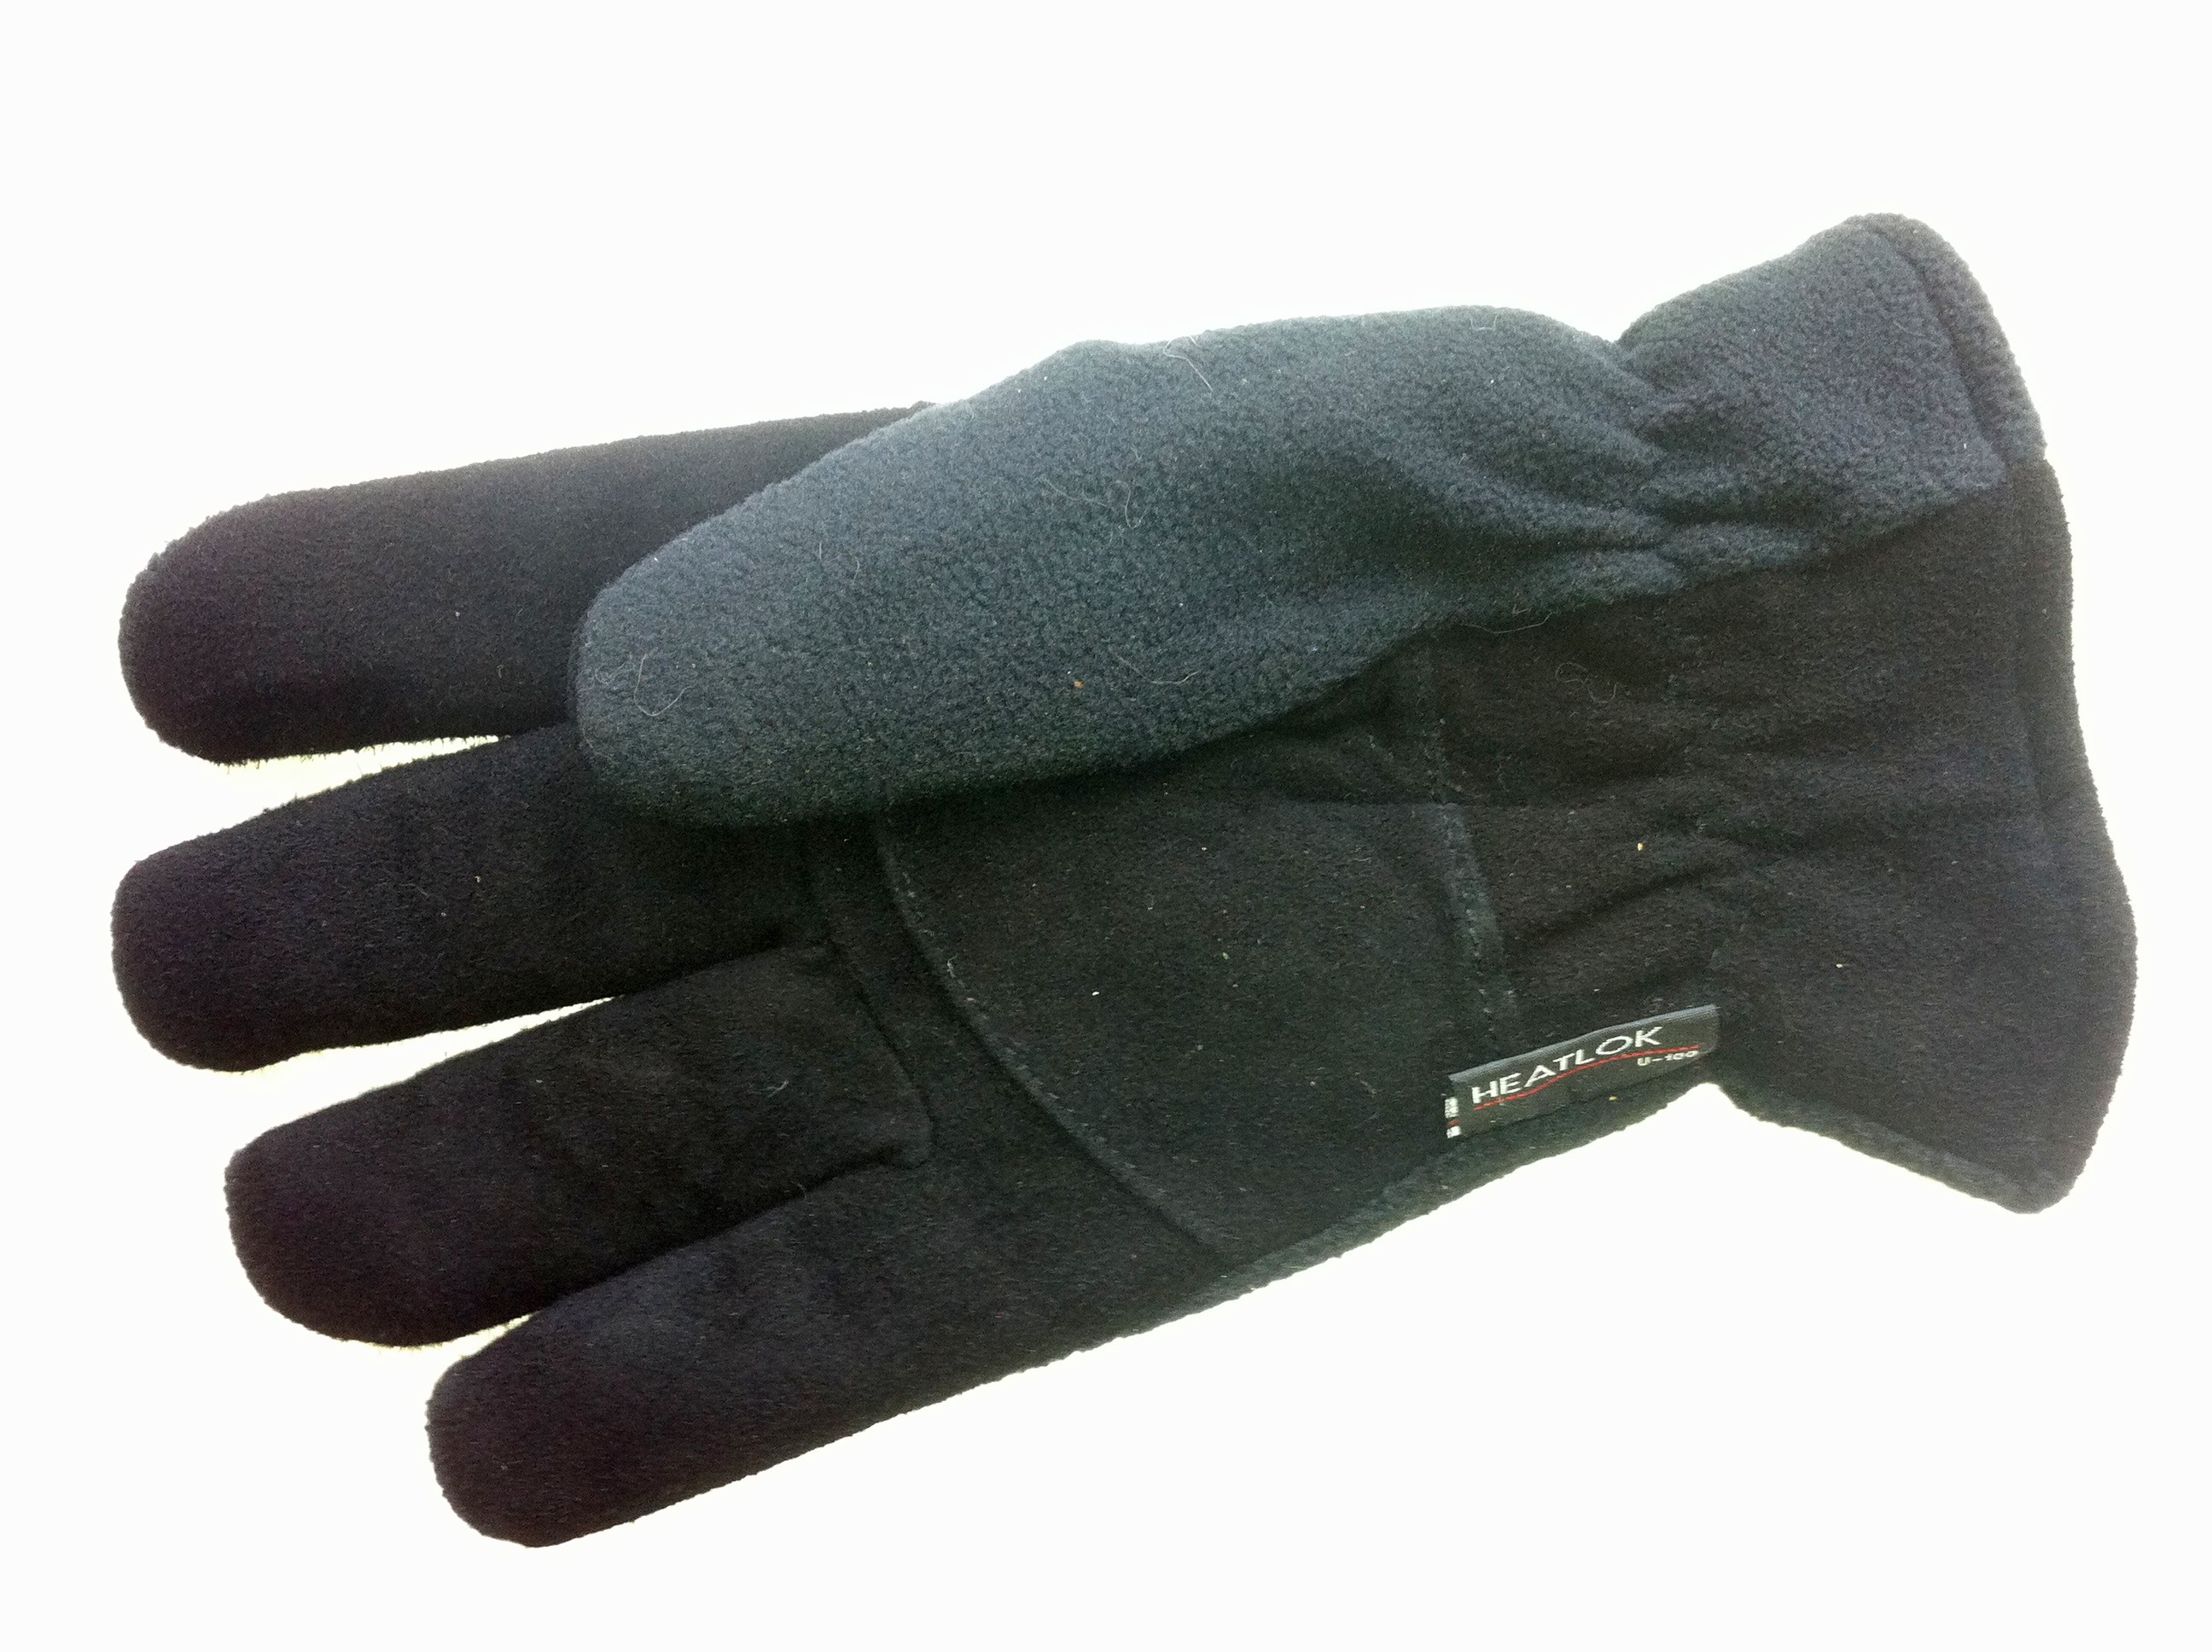 Mens fleece gloves xxl - 4205